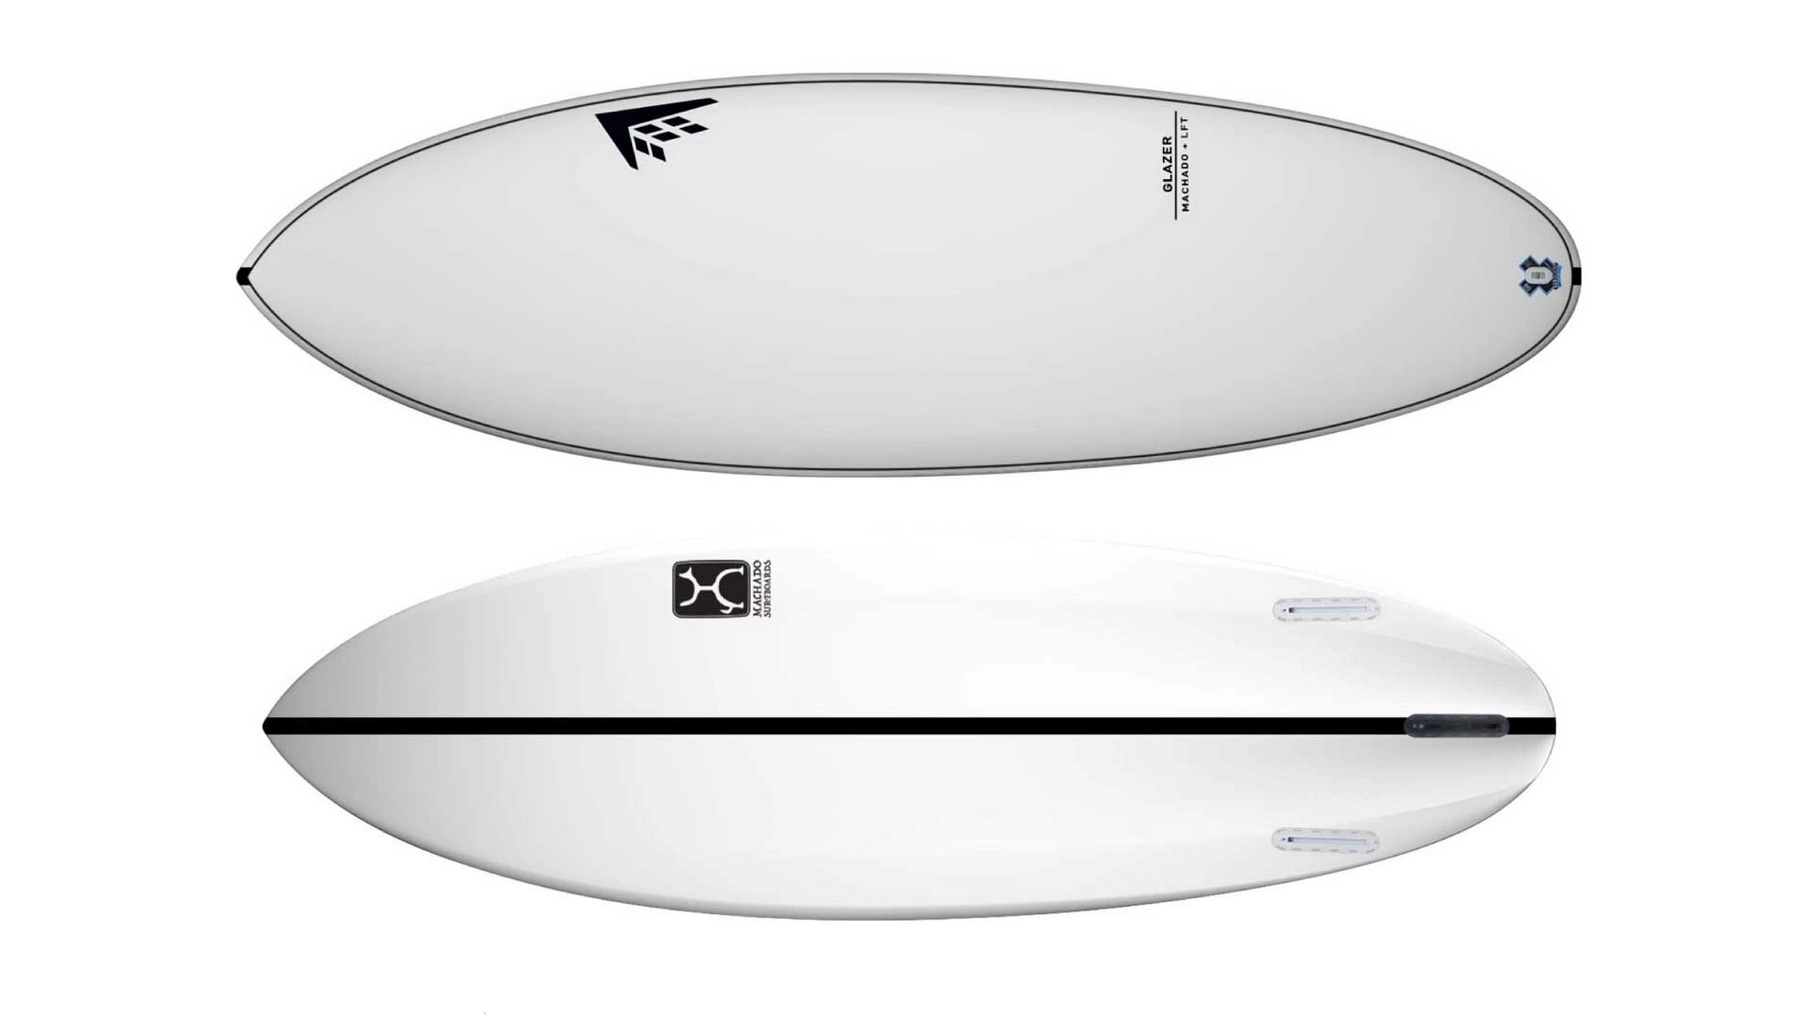 tabla glazer de Rob machado